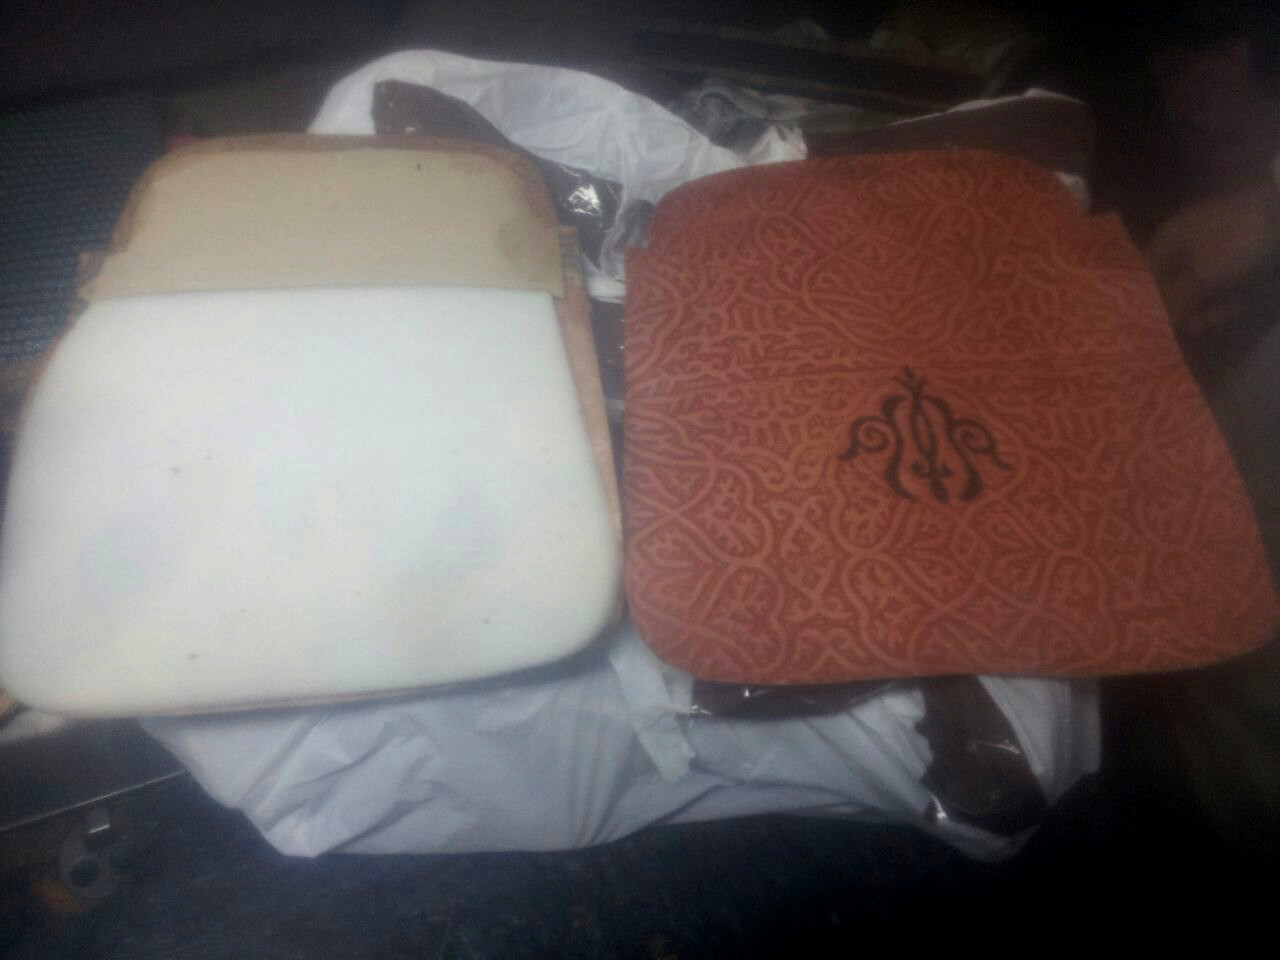 8 - The beginning of manual assembly using natural glue as a basic and industrial secondary Sponge is applied to the skin in some places like back, Cover the non-dyed side of the leather with different dresses